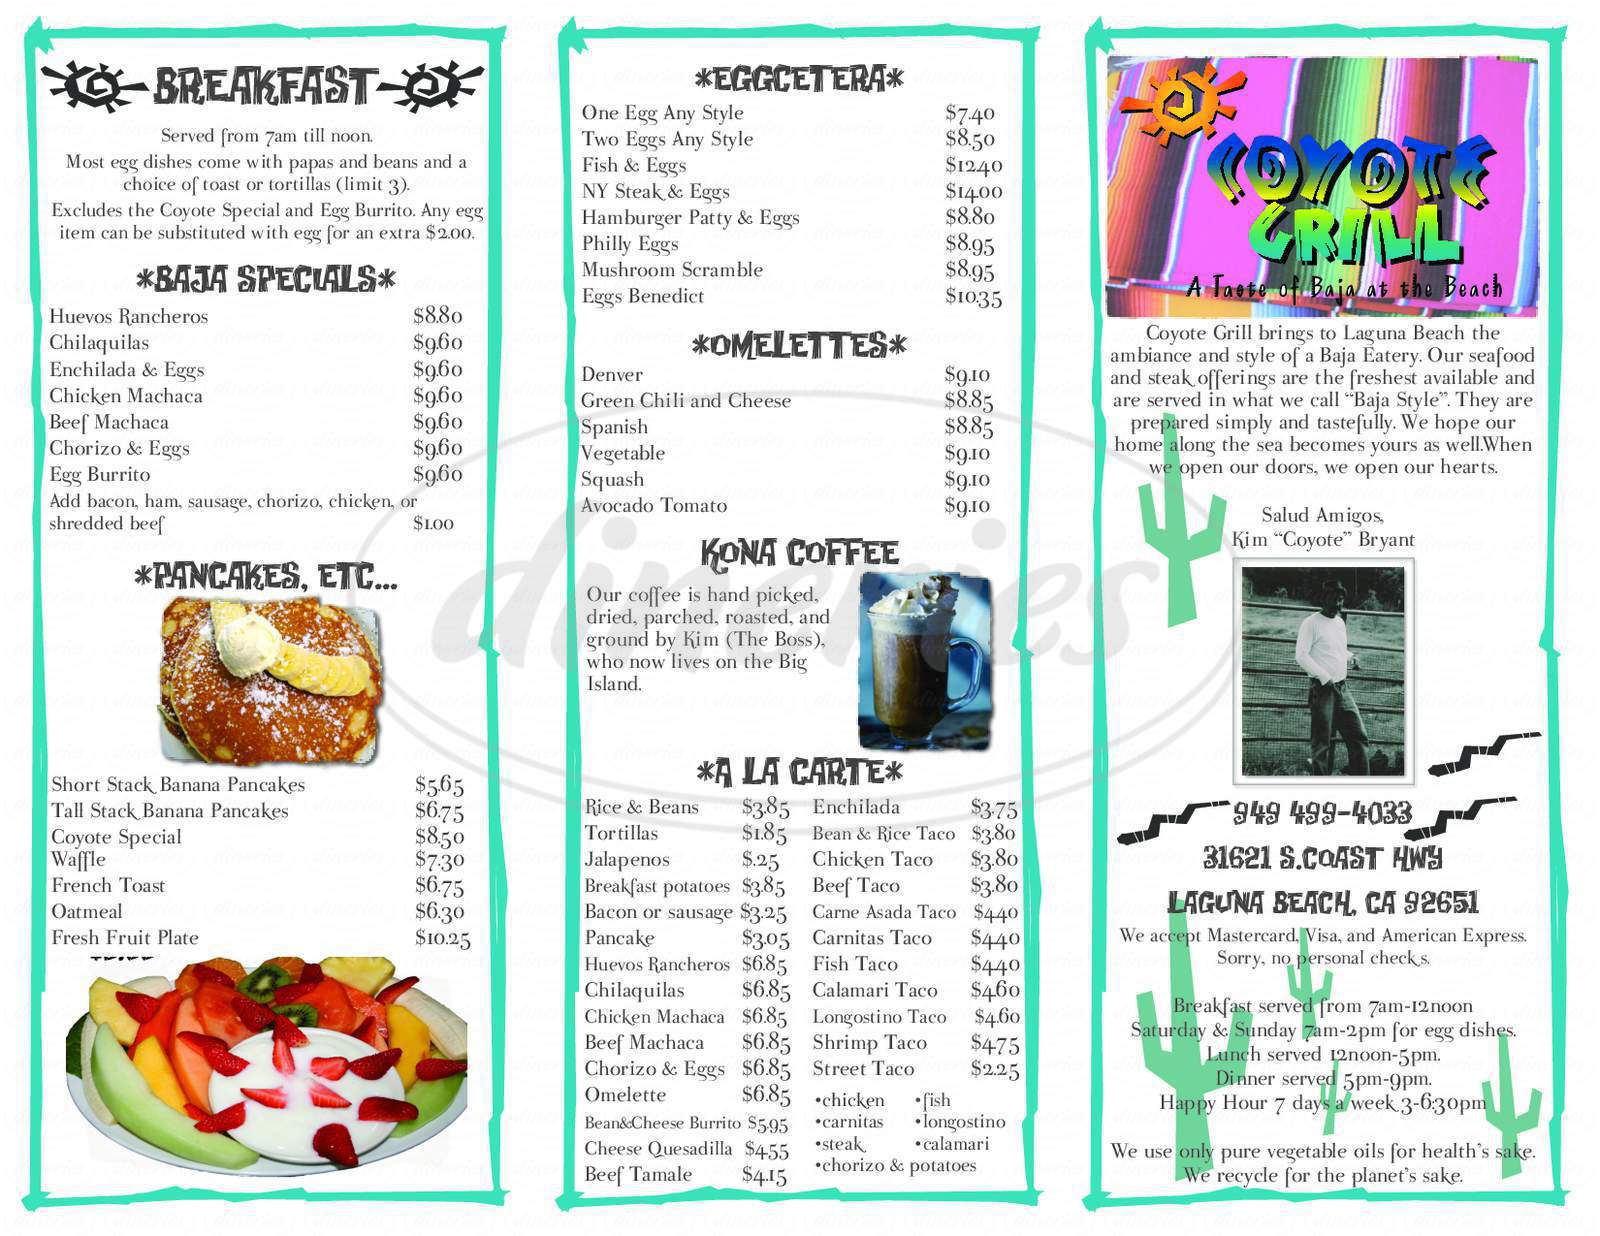 menu for Coyote Grill